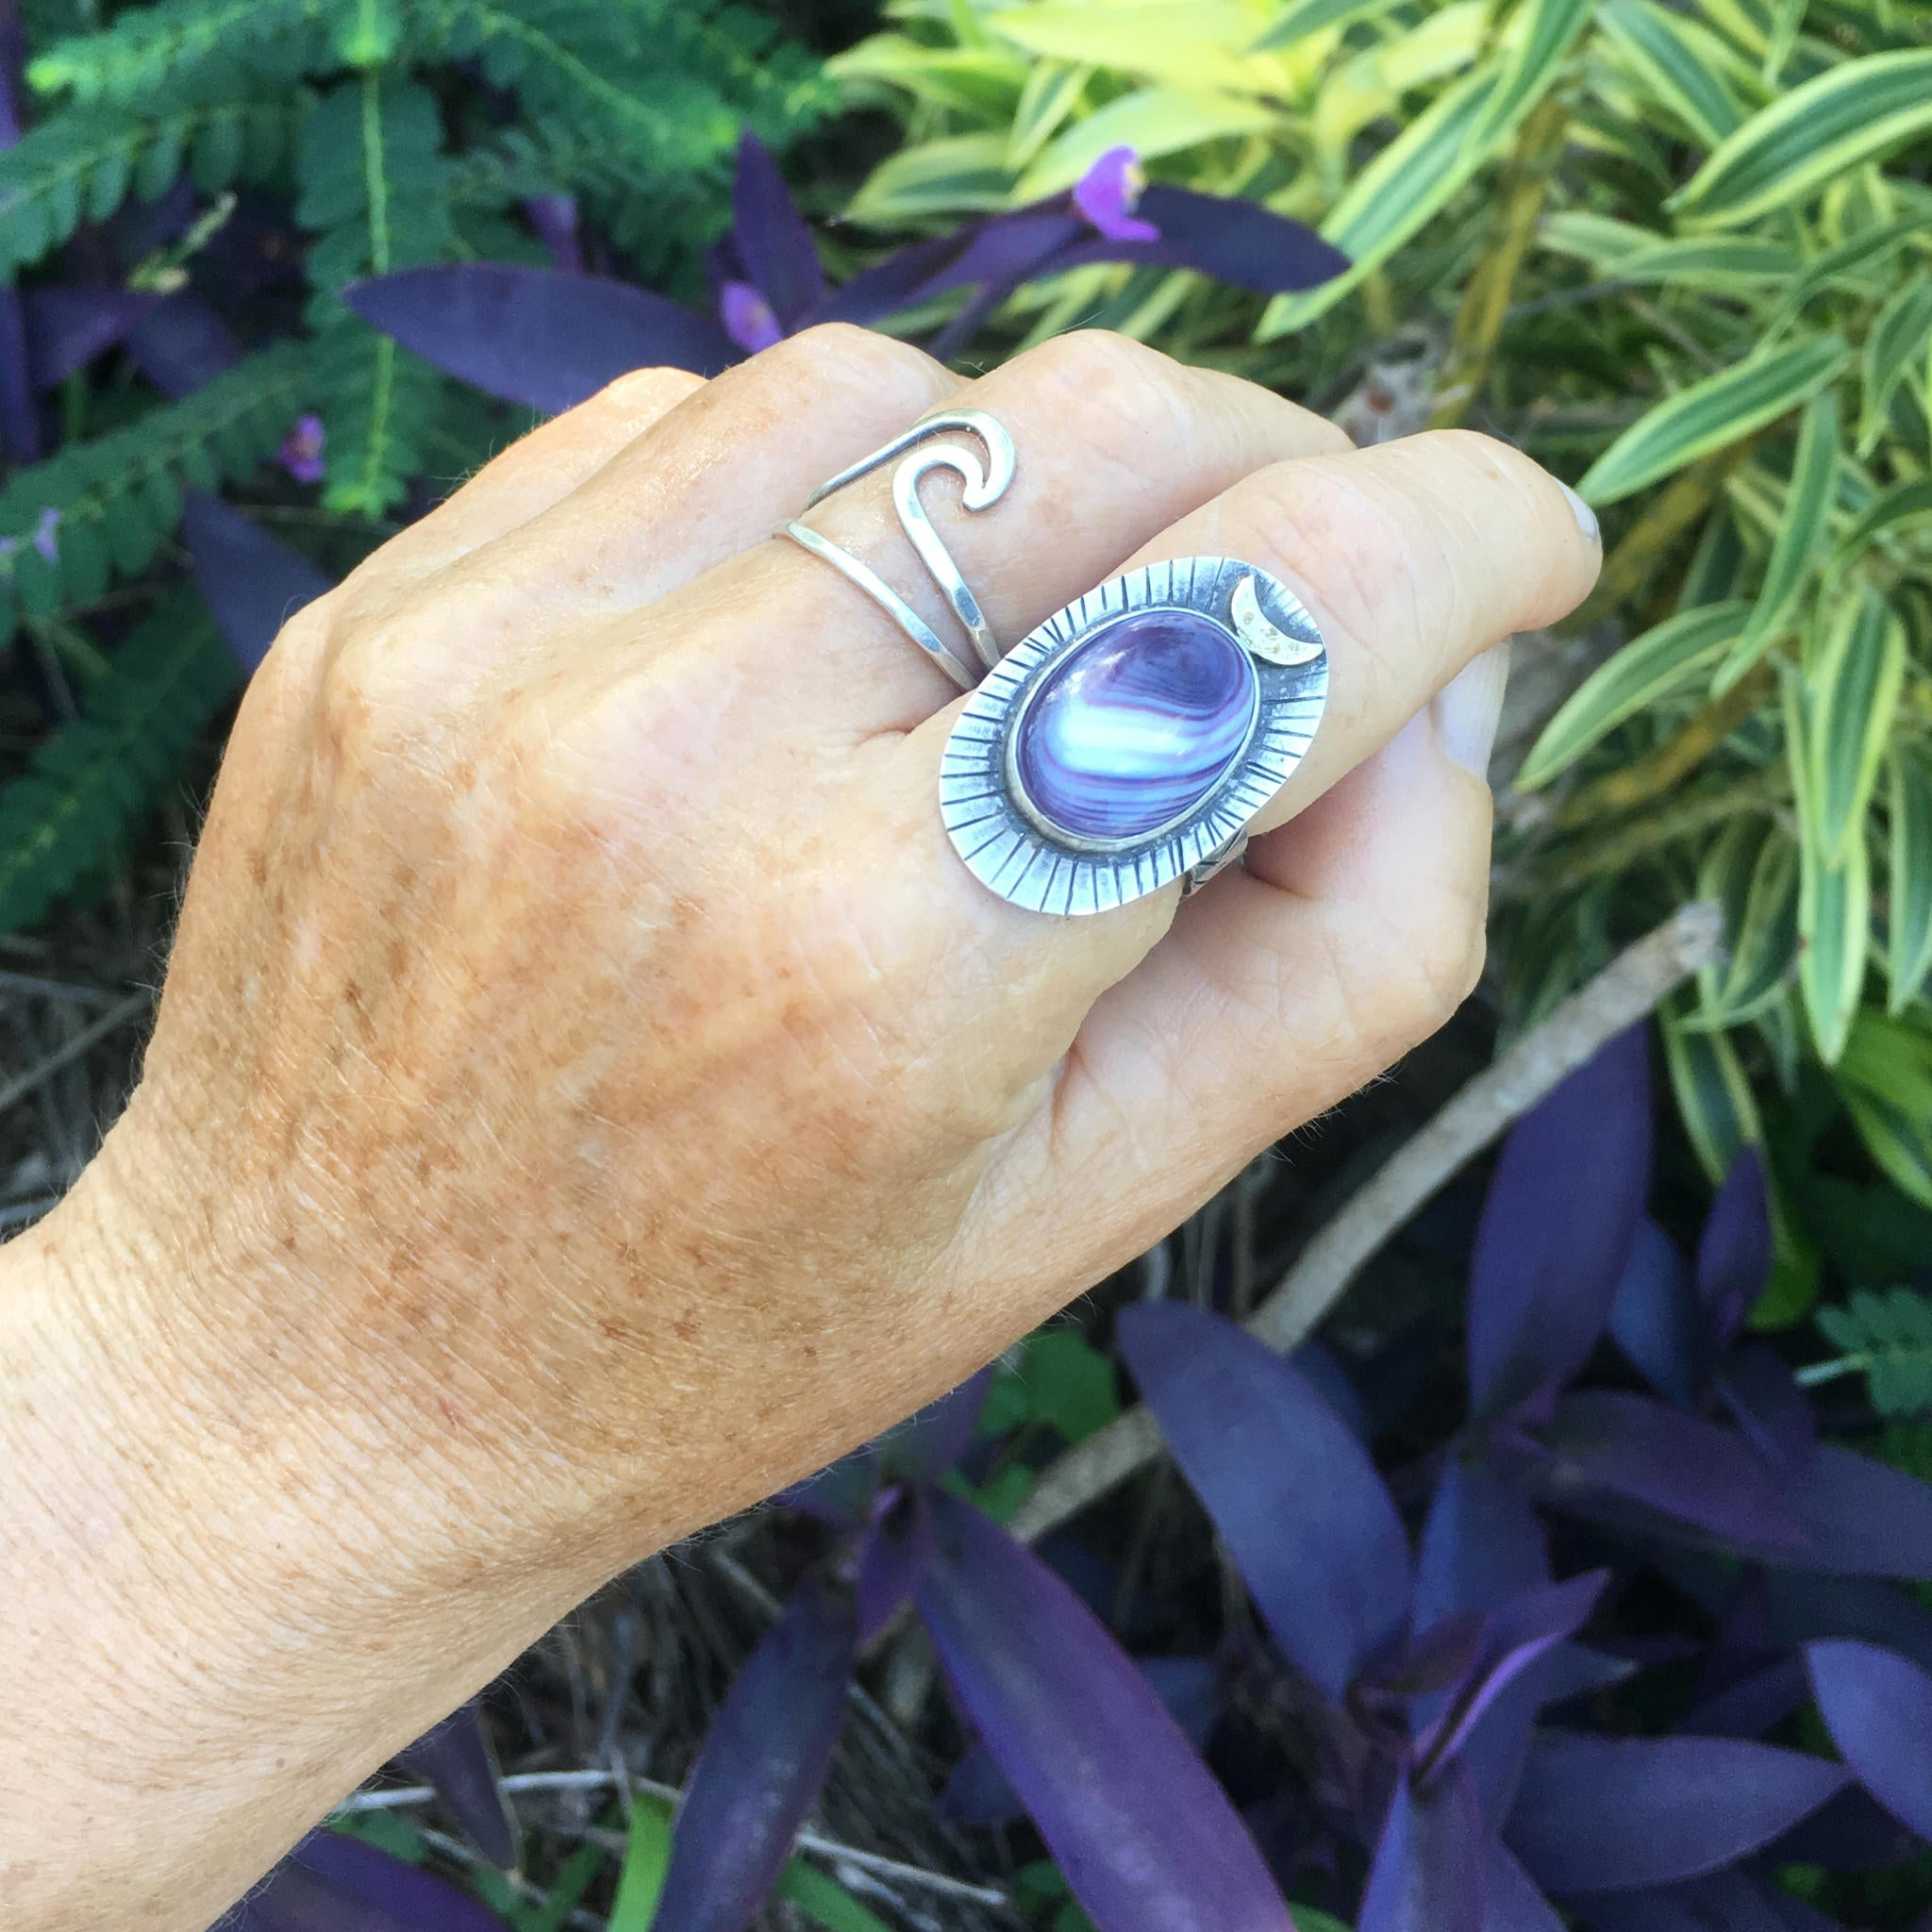 Handcrafted-Moontide-Wampum-Shown-on-Hand-by-SpecialJCreations